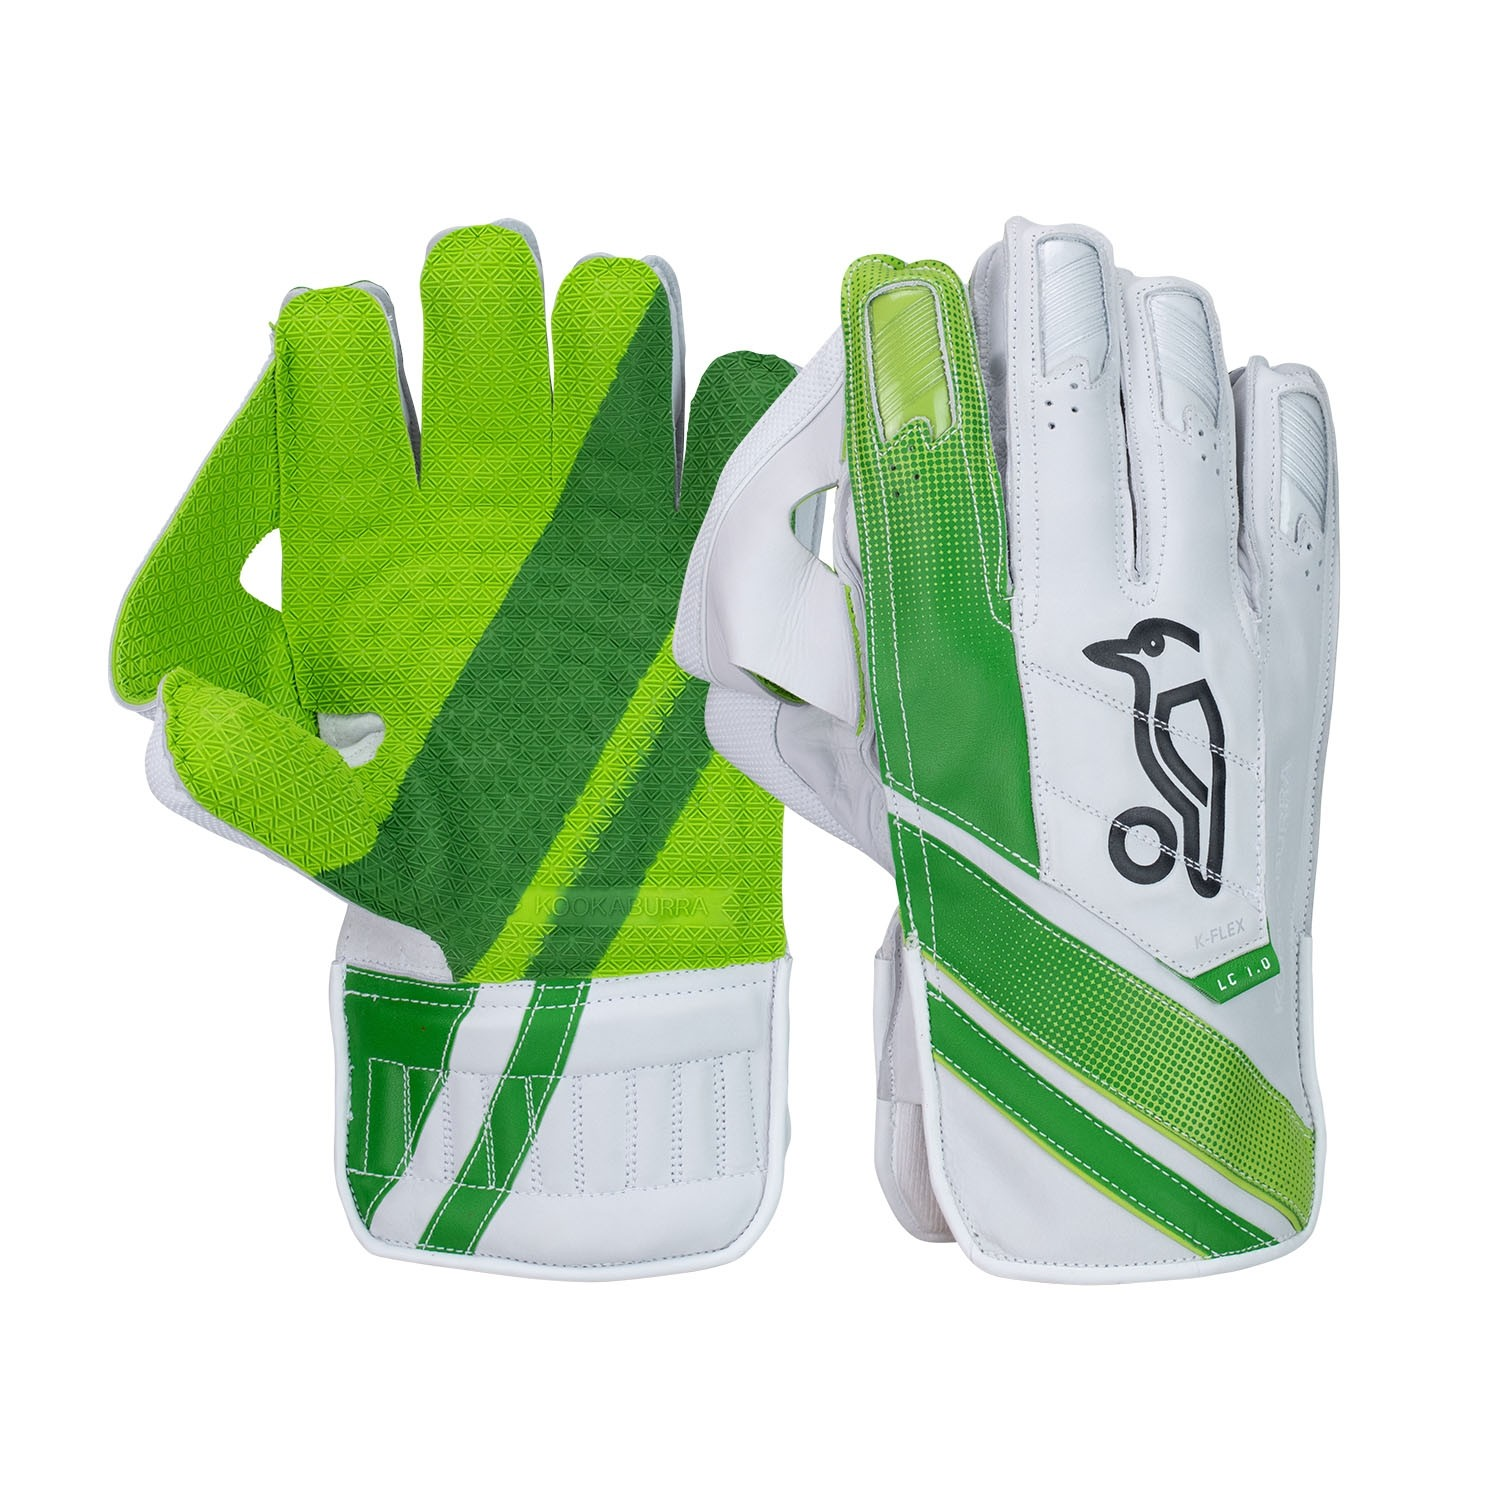 2021 Kookaburra LC 1.0 Wicket Keeping Gloves